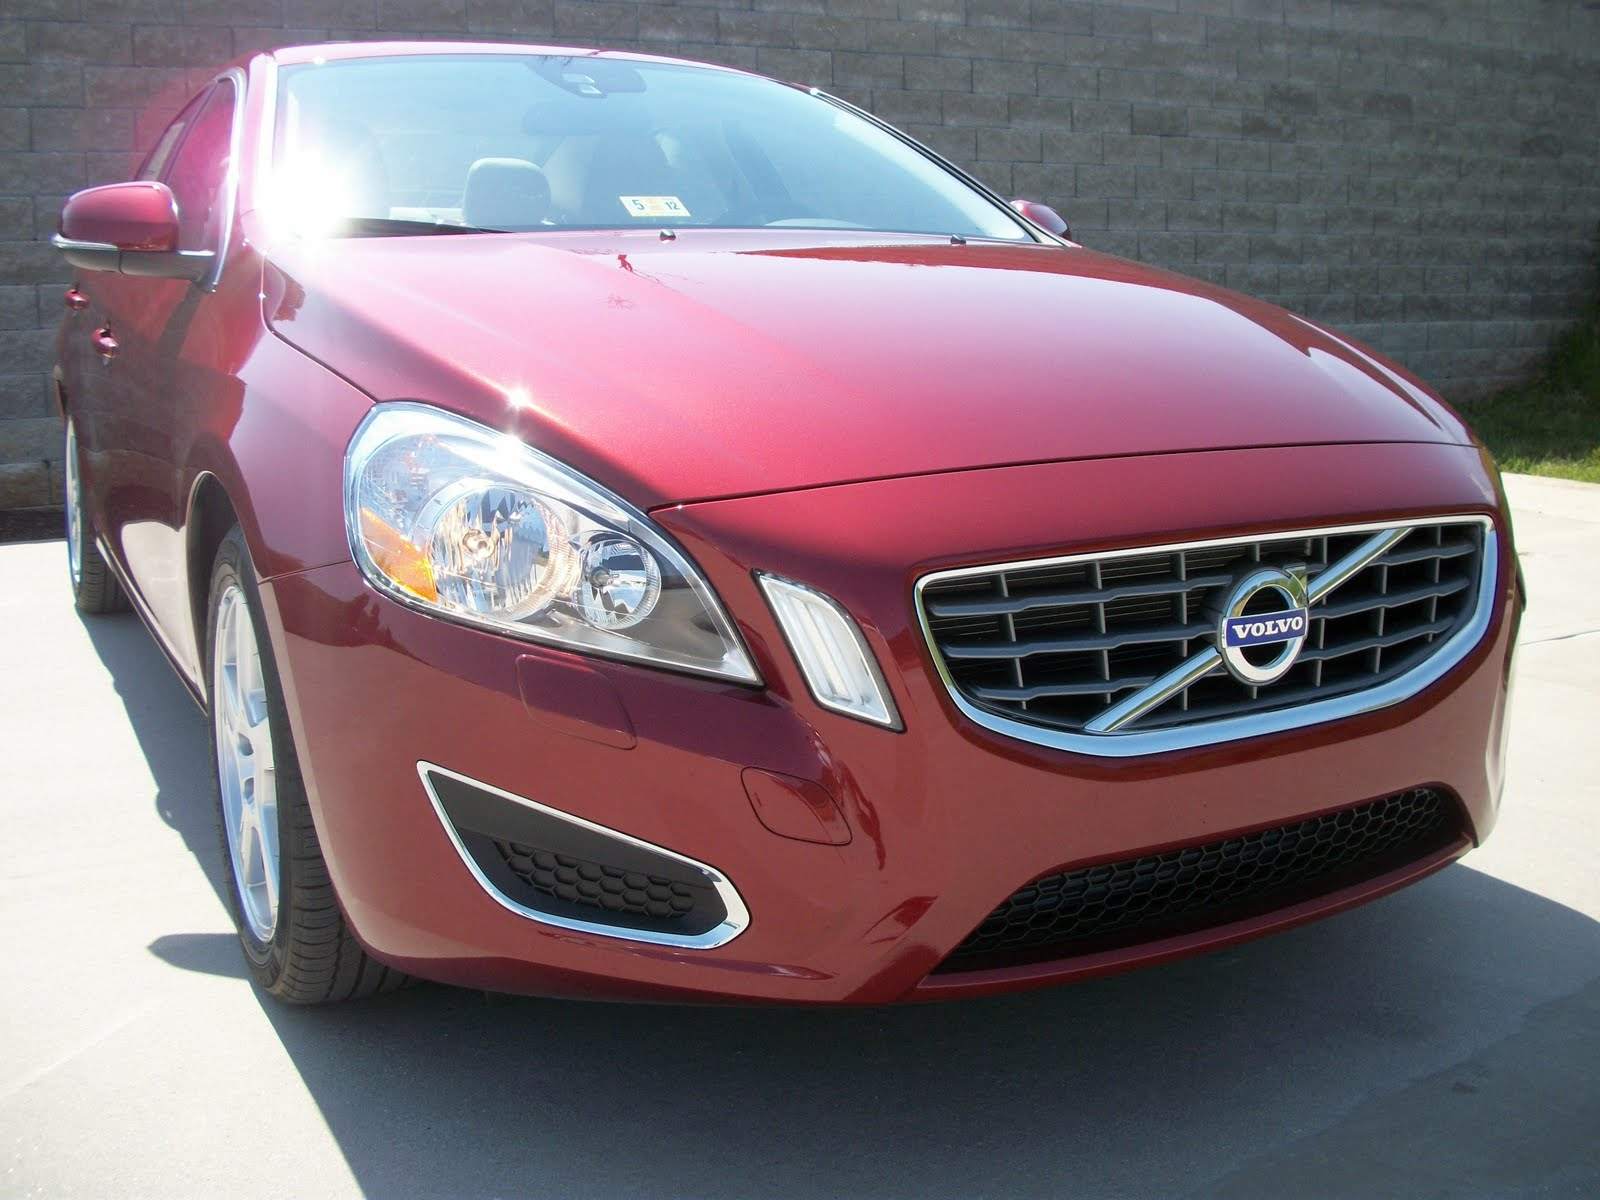 2012 volvo s60 t5 flamenco red metallic i take pictures of cars. Black Bedroom Furniture Sets. Home Design Ideas